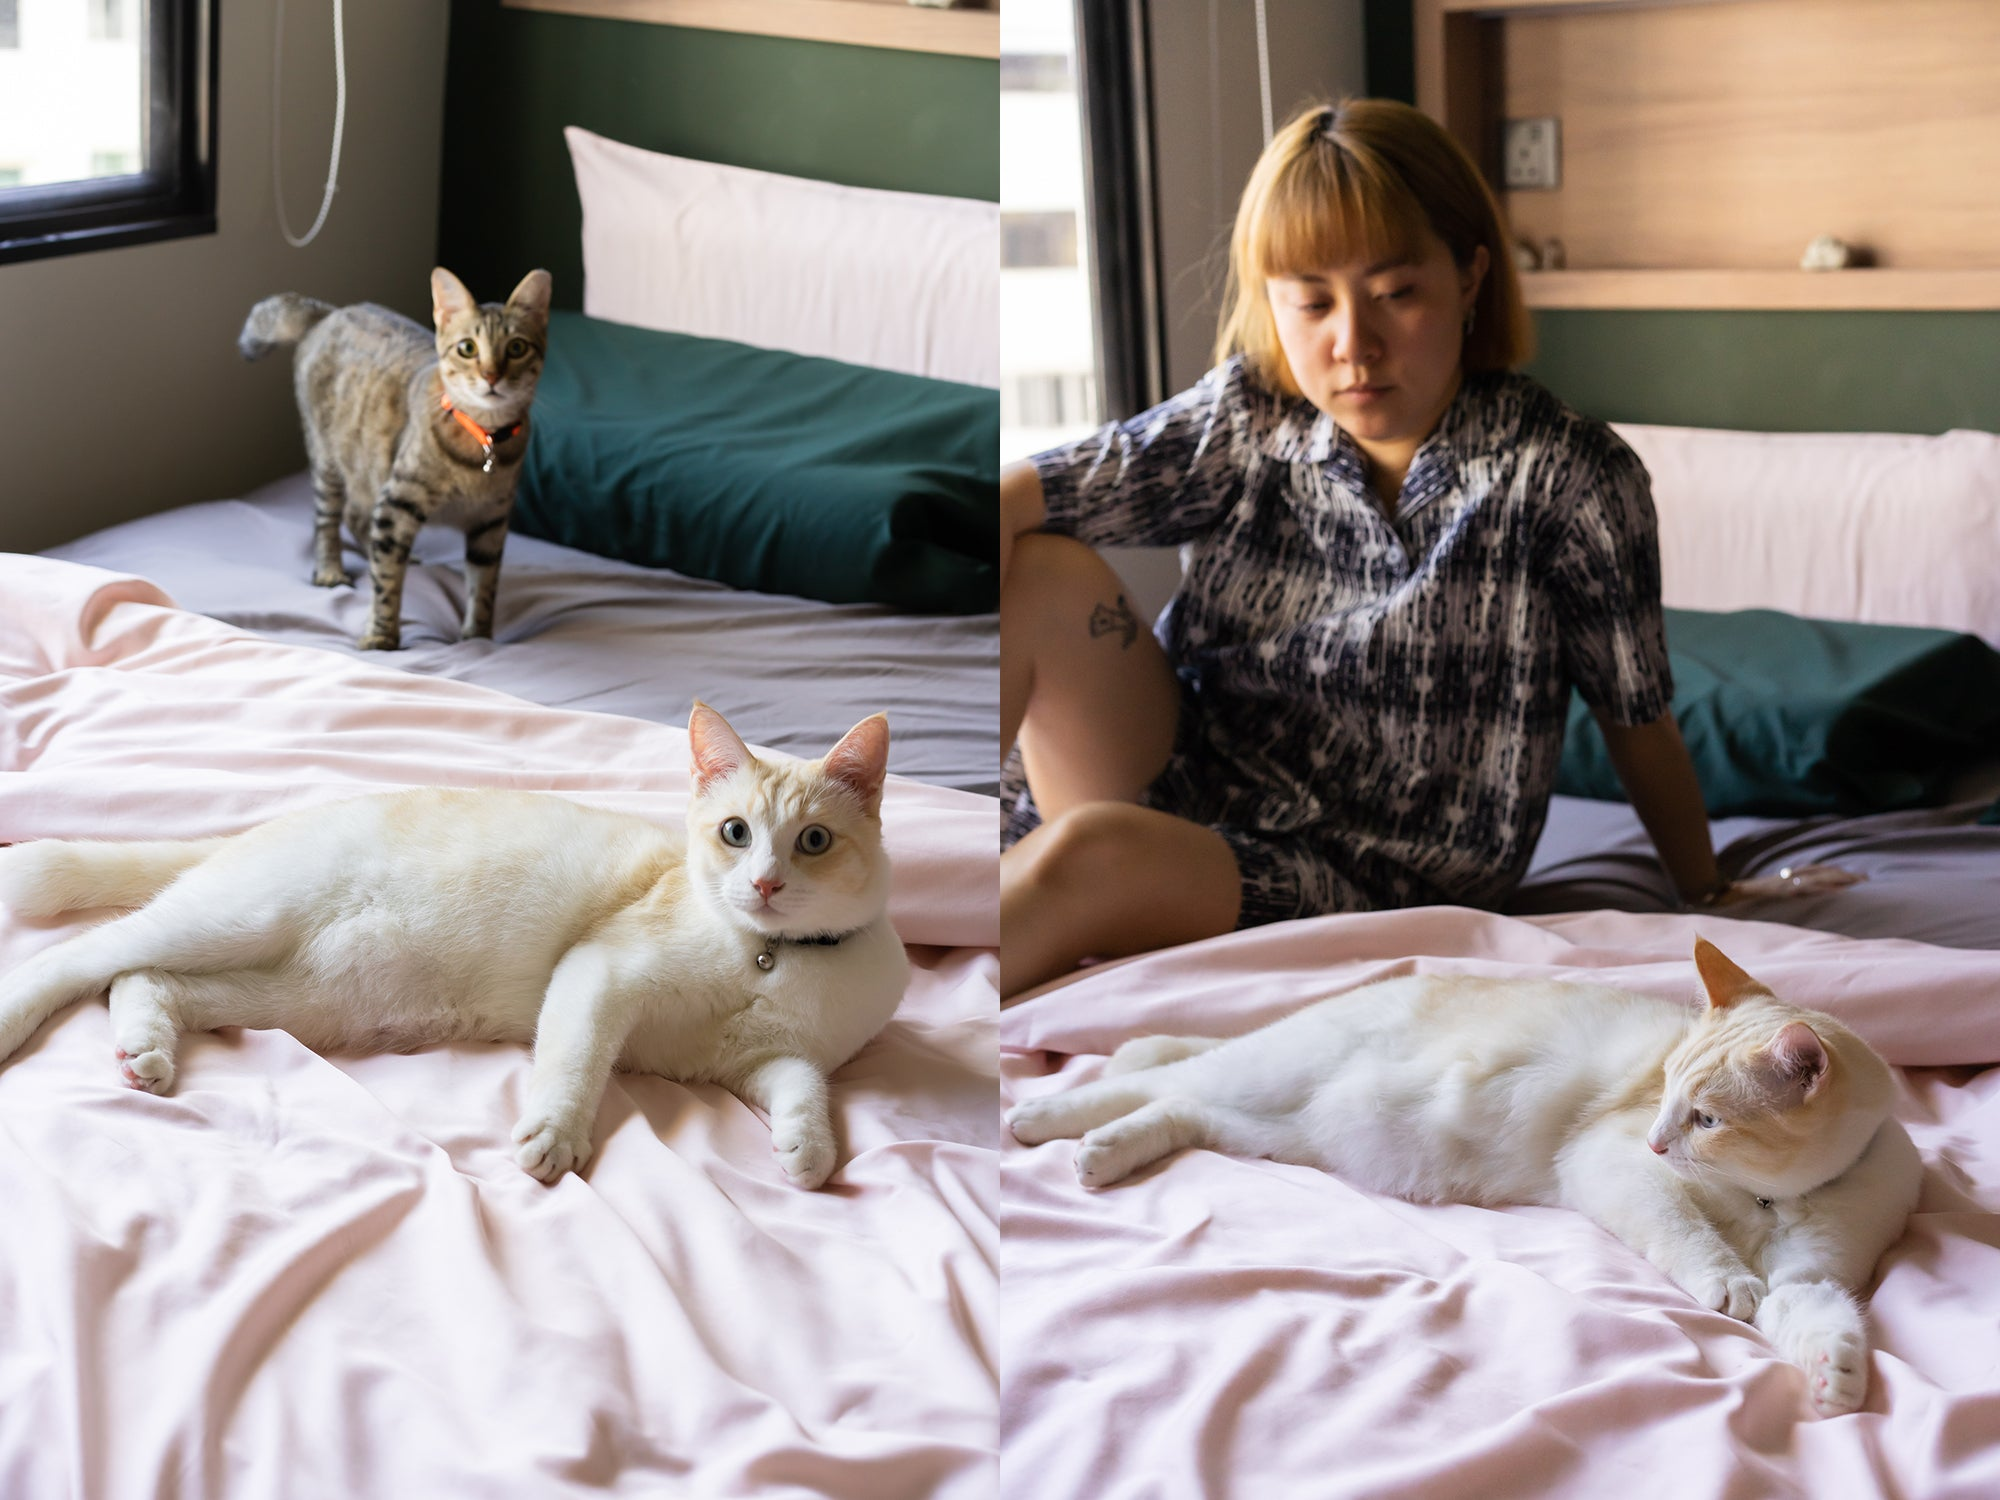 cute cats chilling on pink bedsheets